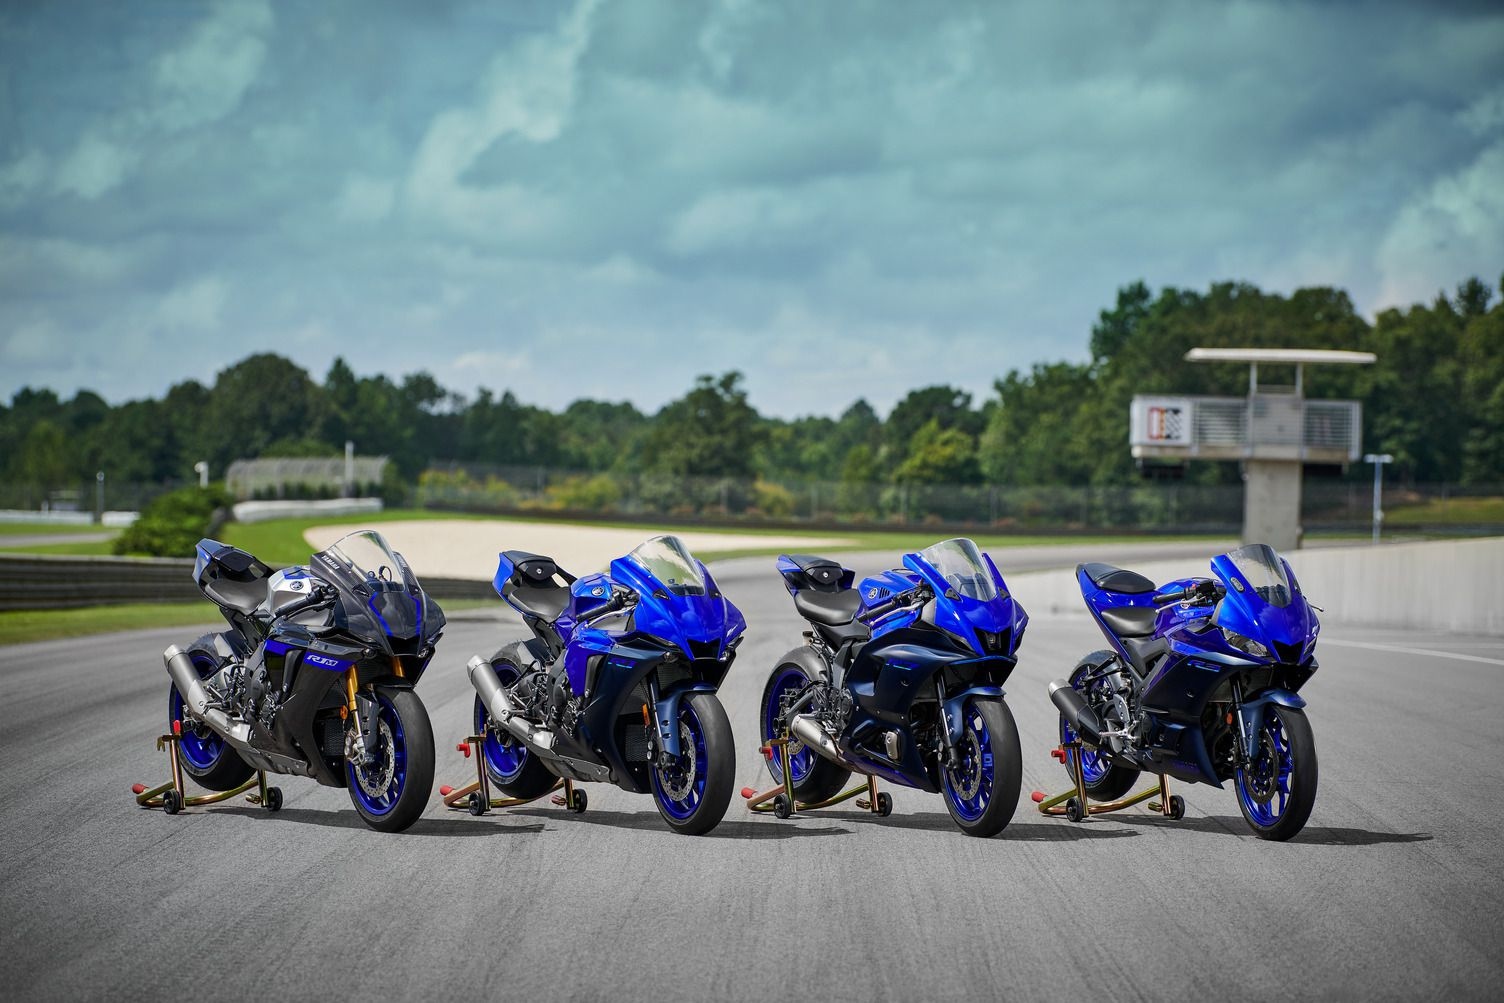 The R1, R7, and R3 models also offer an updated Team Yamaha Blue color scheme for 2022 (pay no attention to the R1M on the left).